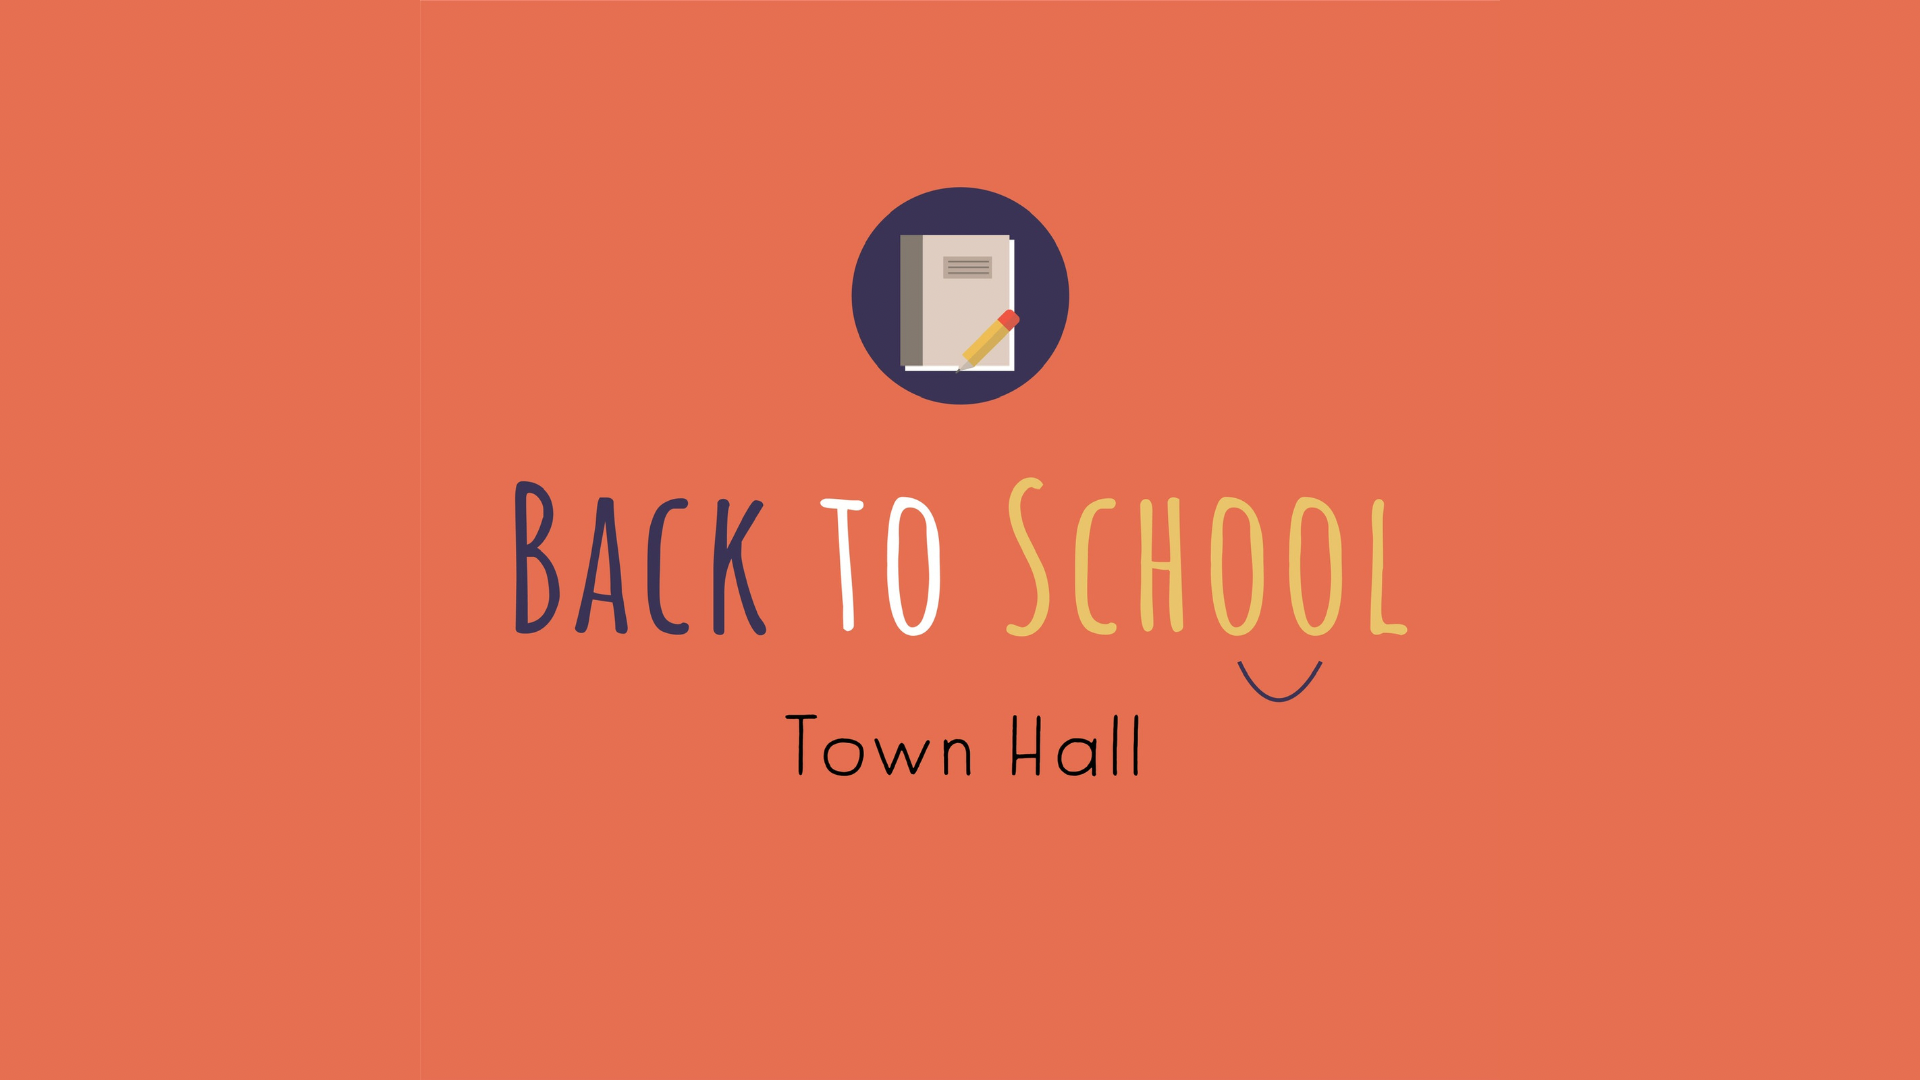 Back to School Town Hall 2021